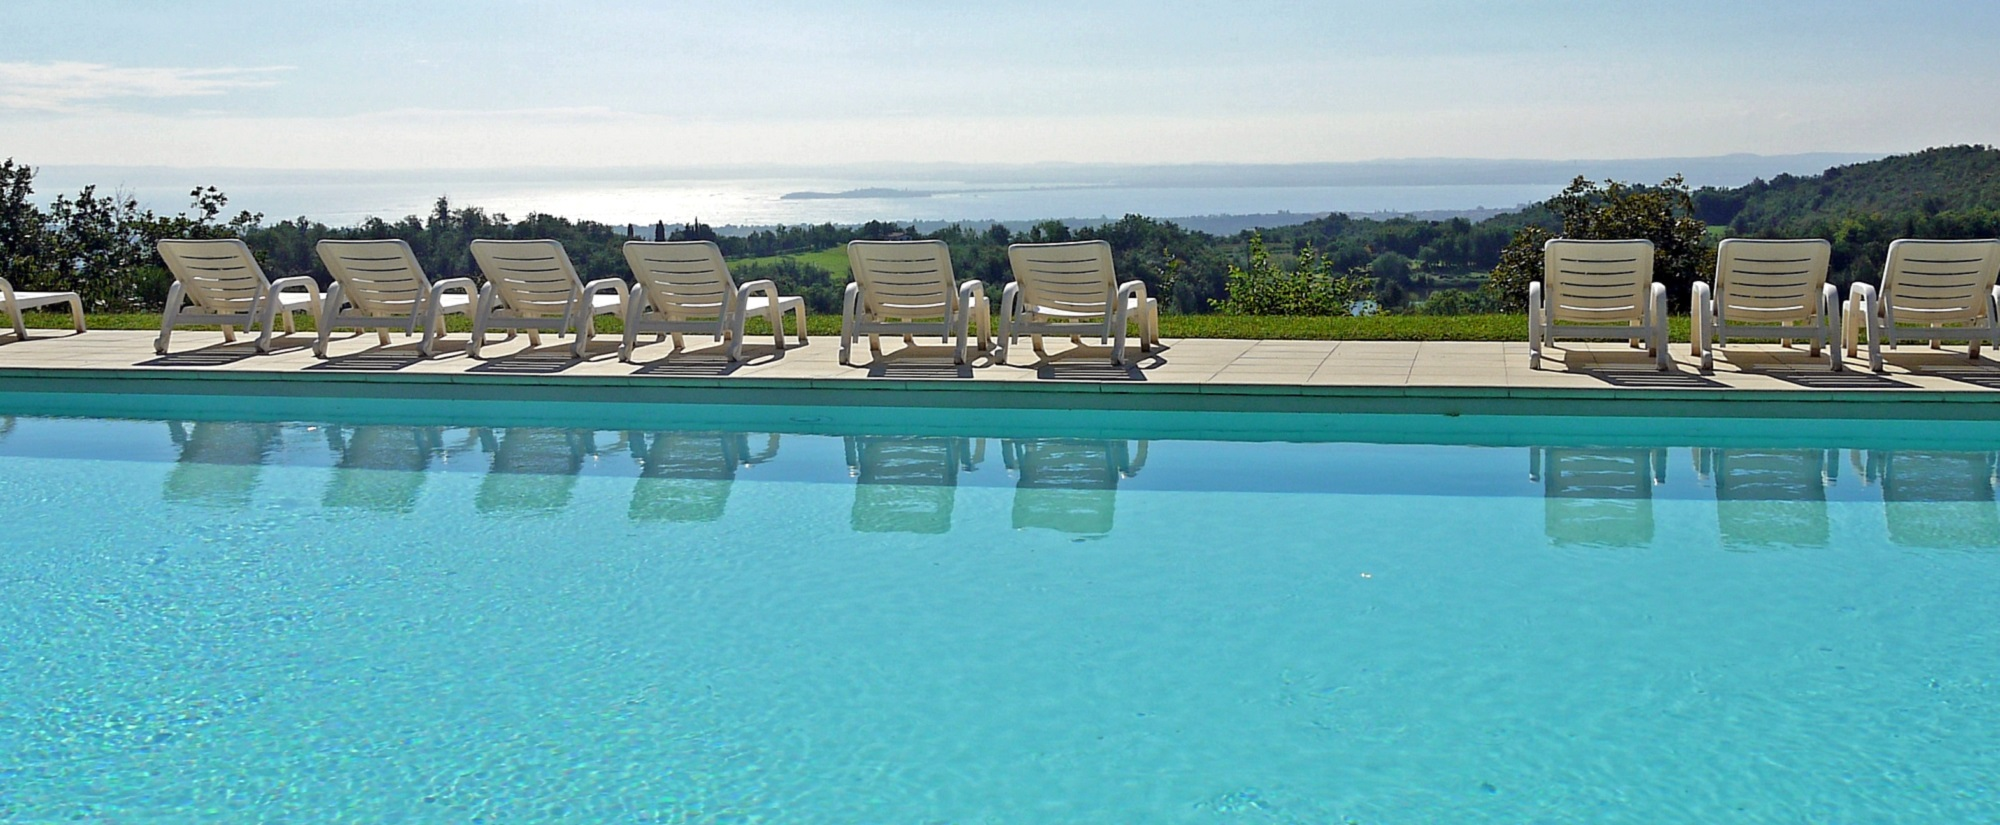 Ferienhaus Gardasee Mit Pool Privat Holiday House Holiday Home Villa Lake Garda Holiday House